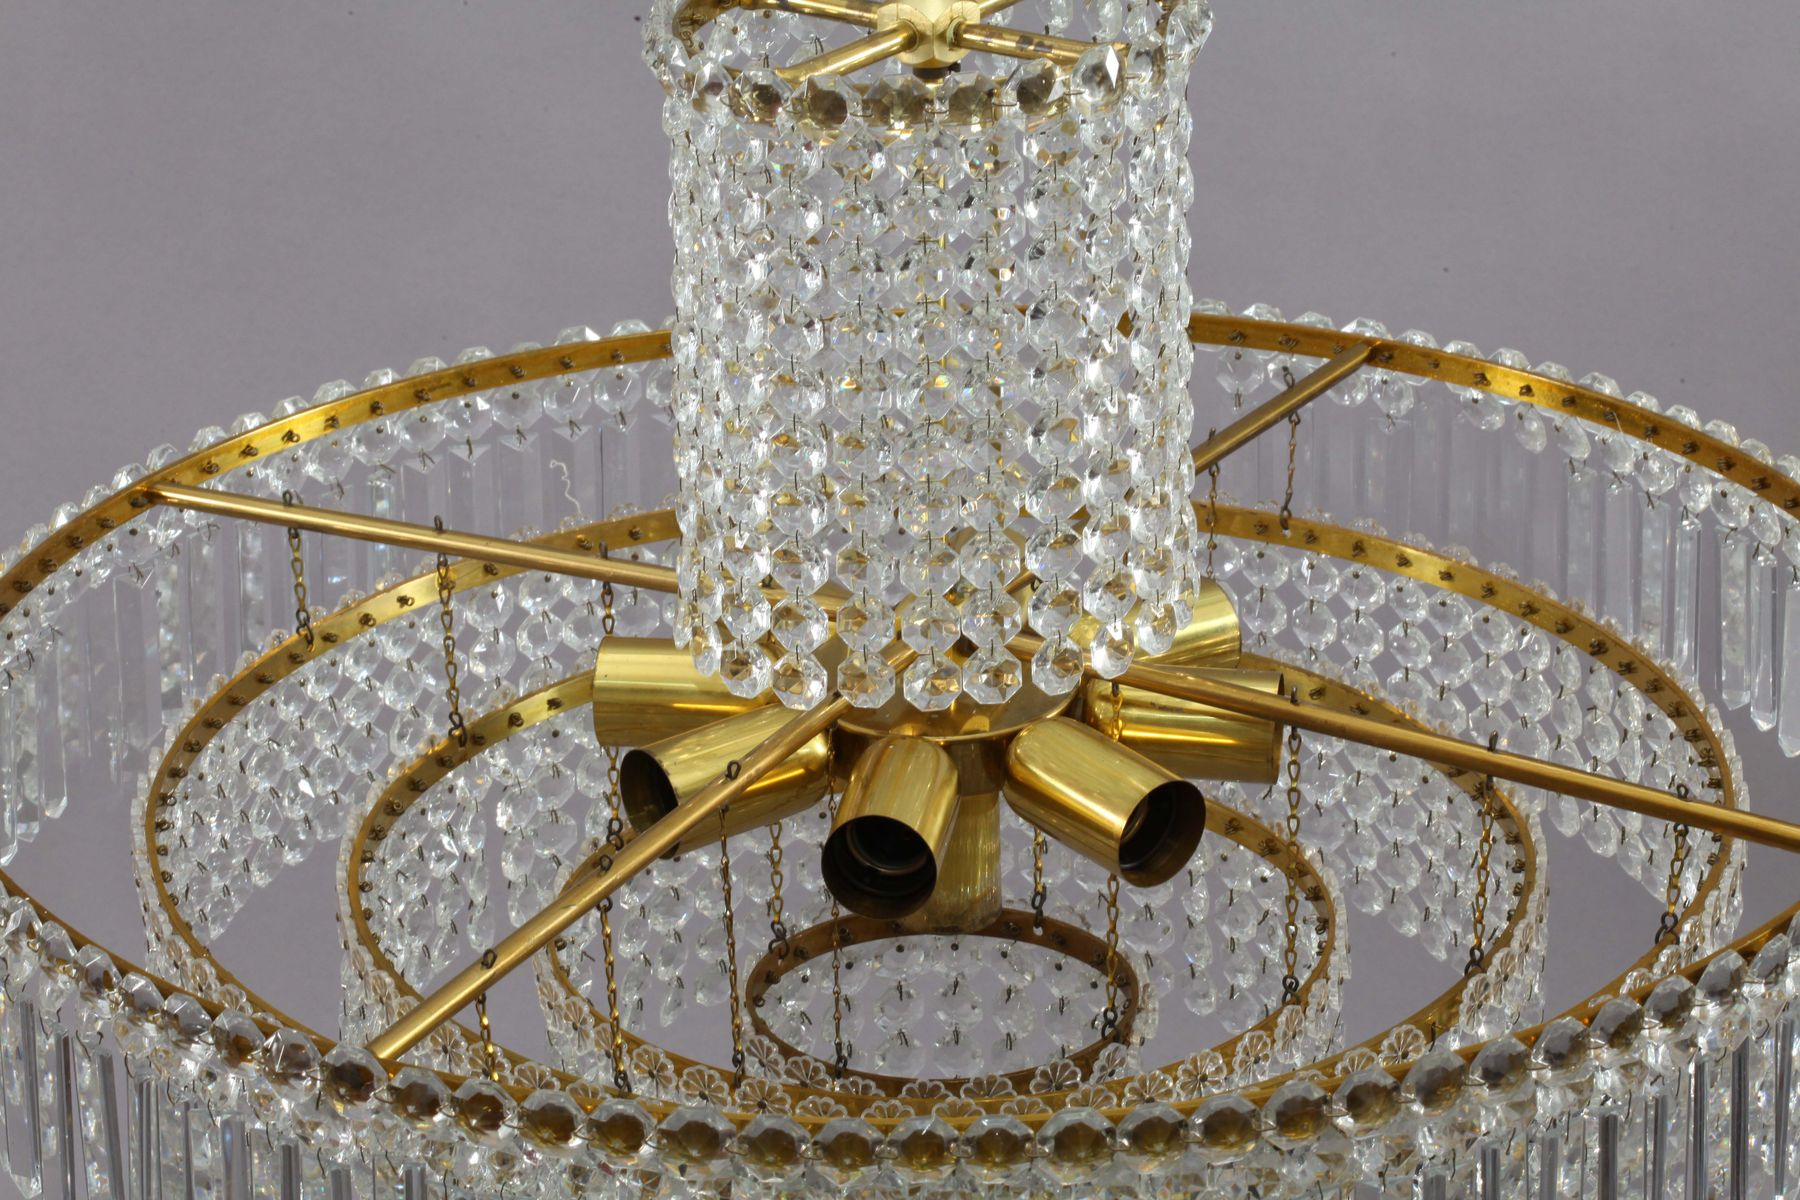 Crystal Glass Chandelier from Bakalowits & Sohne 1950s for sale